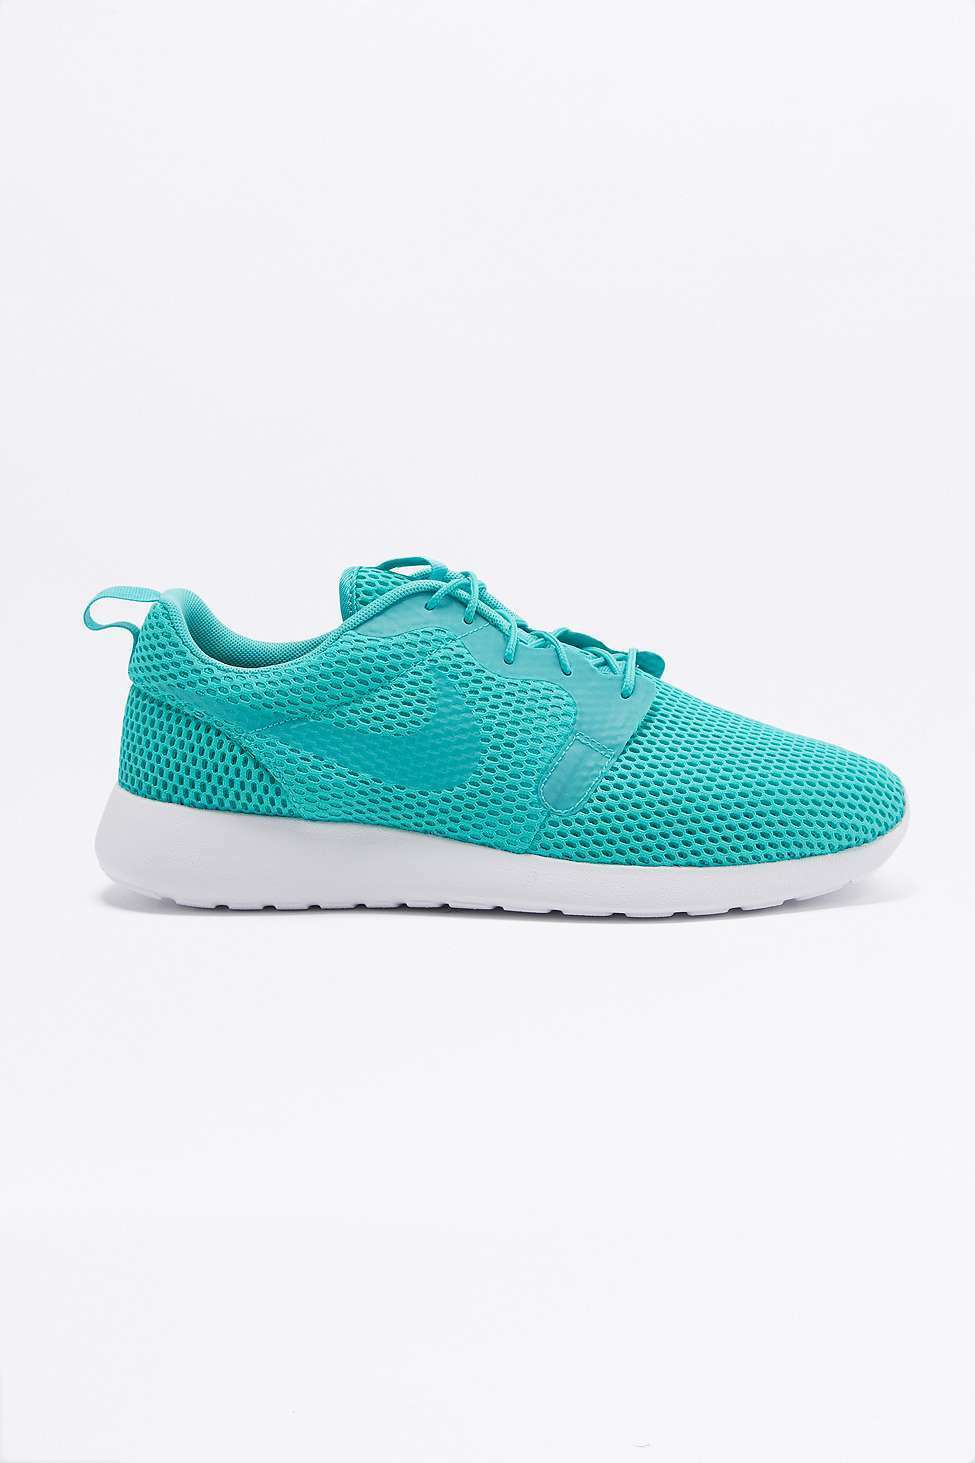 Nike Roshe One Hyper Breathe Turquoise Trainers Trainers Trainers Größe  UK 9 - Brand New With Tags 08cc0a